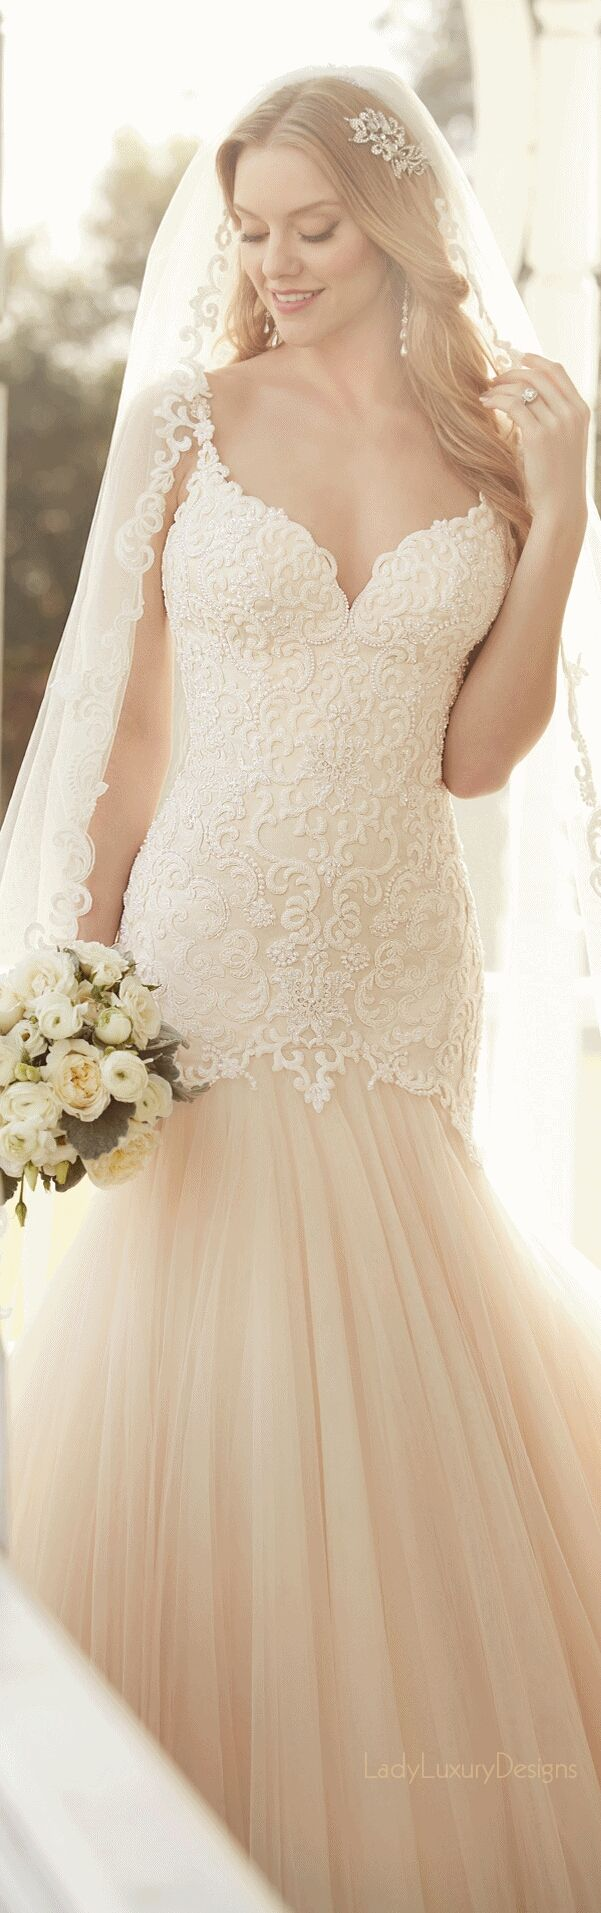 58 best [done] Wedding Dresses images on Pinterest | Colored wedding ...